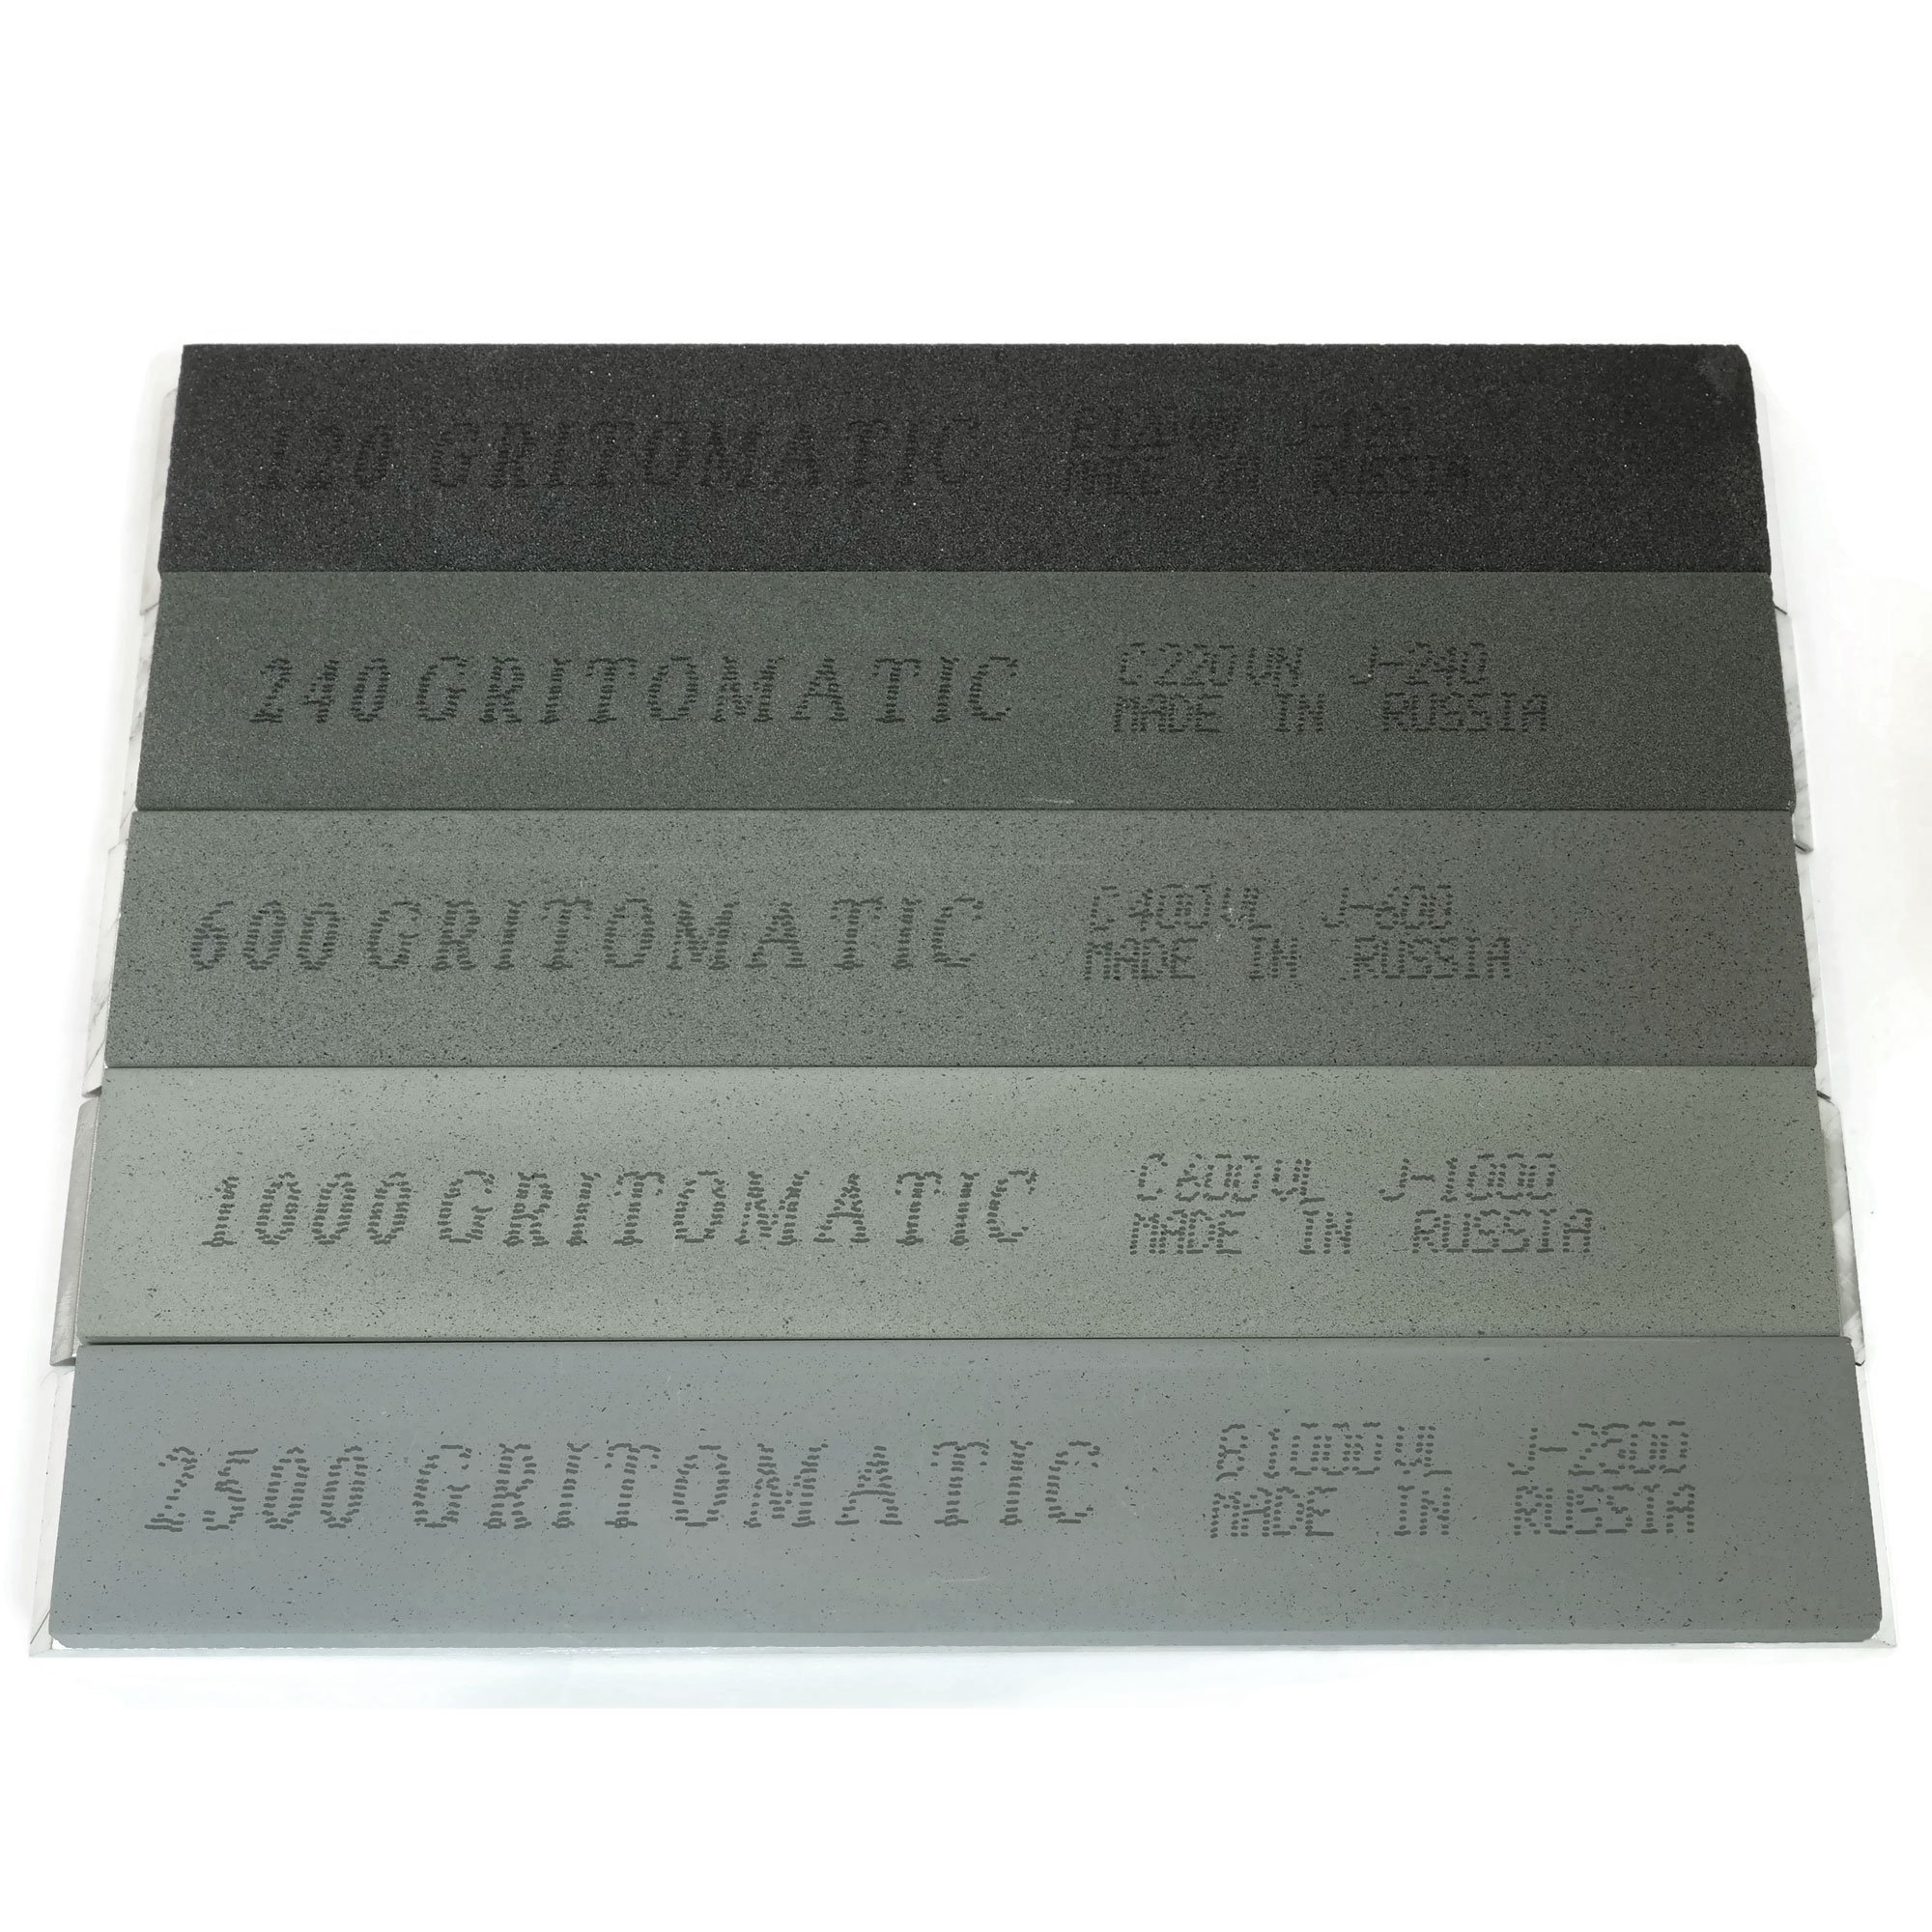 Gritomatic Silicon Carbide 6'' x 1'' x 0.25'' Sharpening Stone Set with Aluminum Mounting for Edge Pro (5 stones)